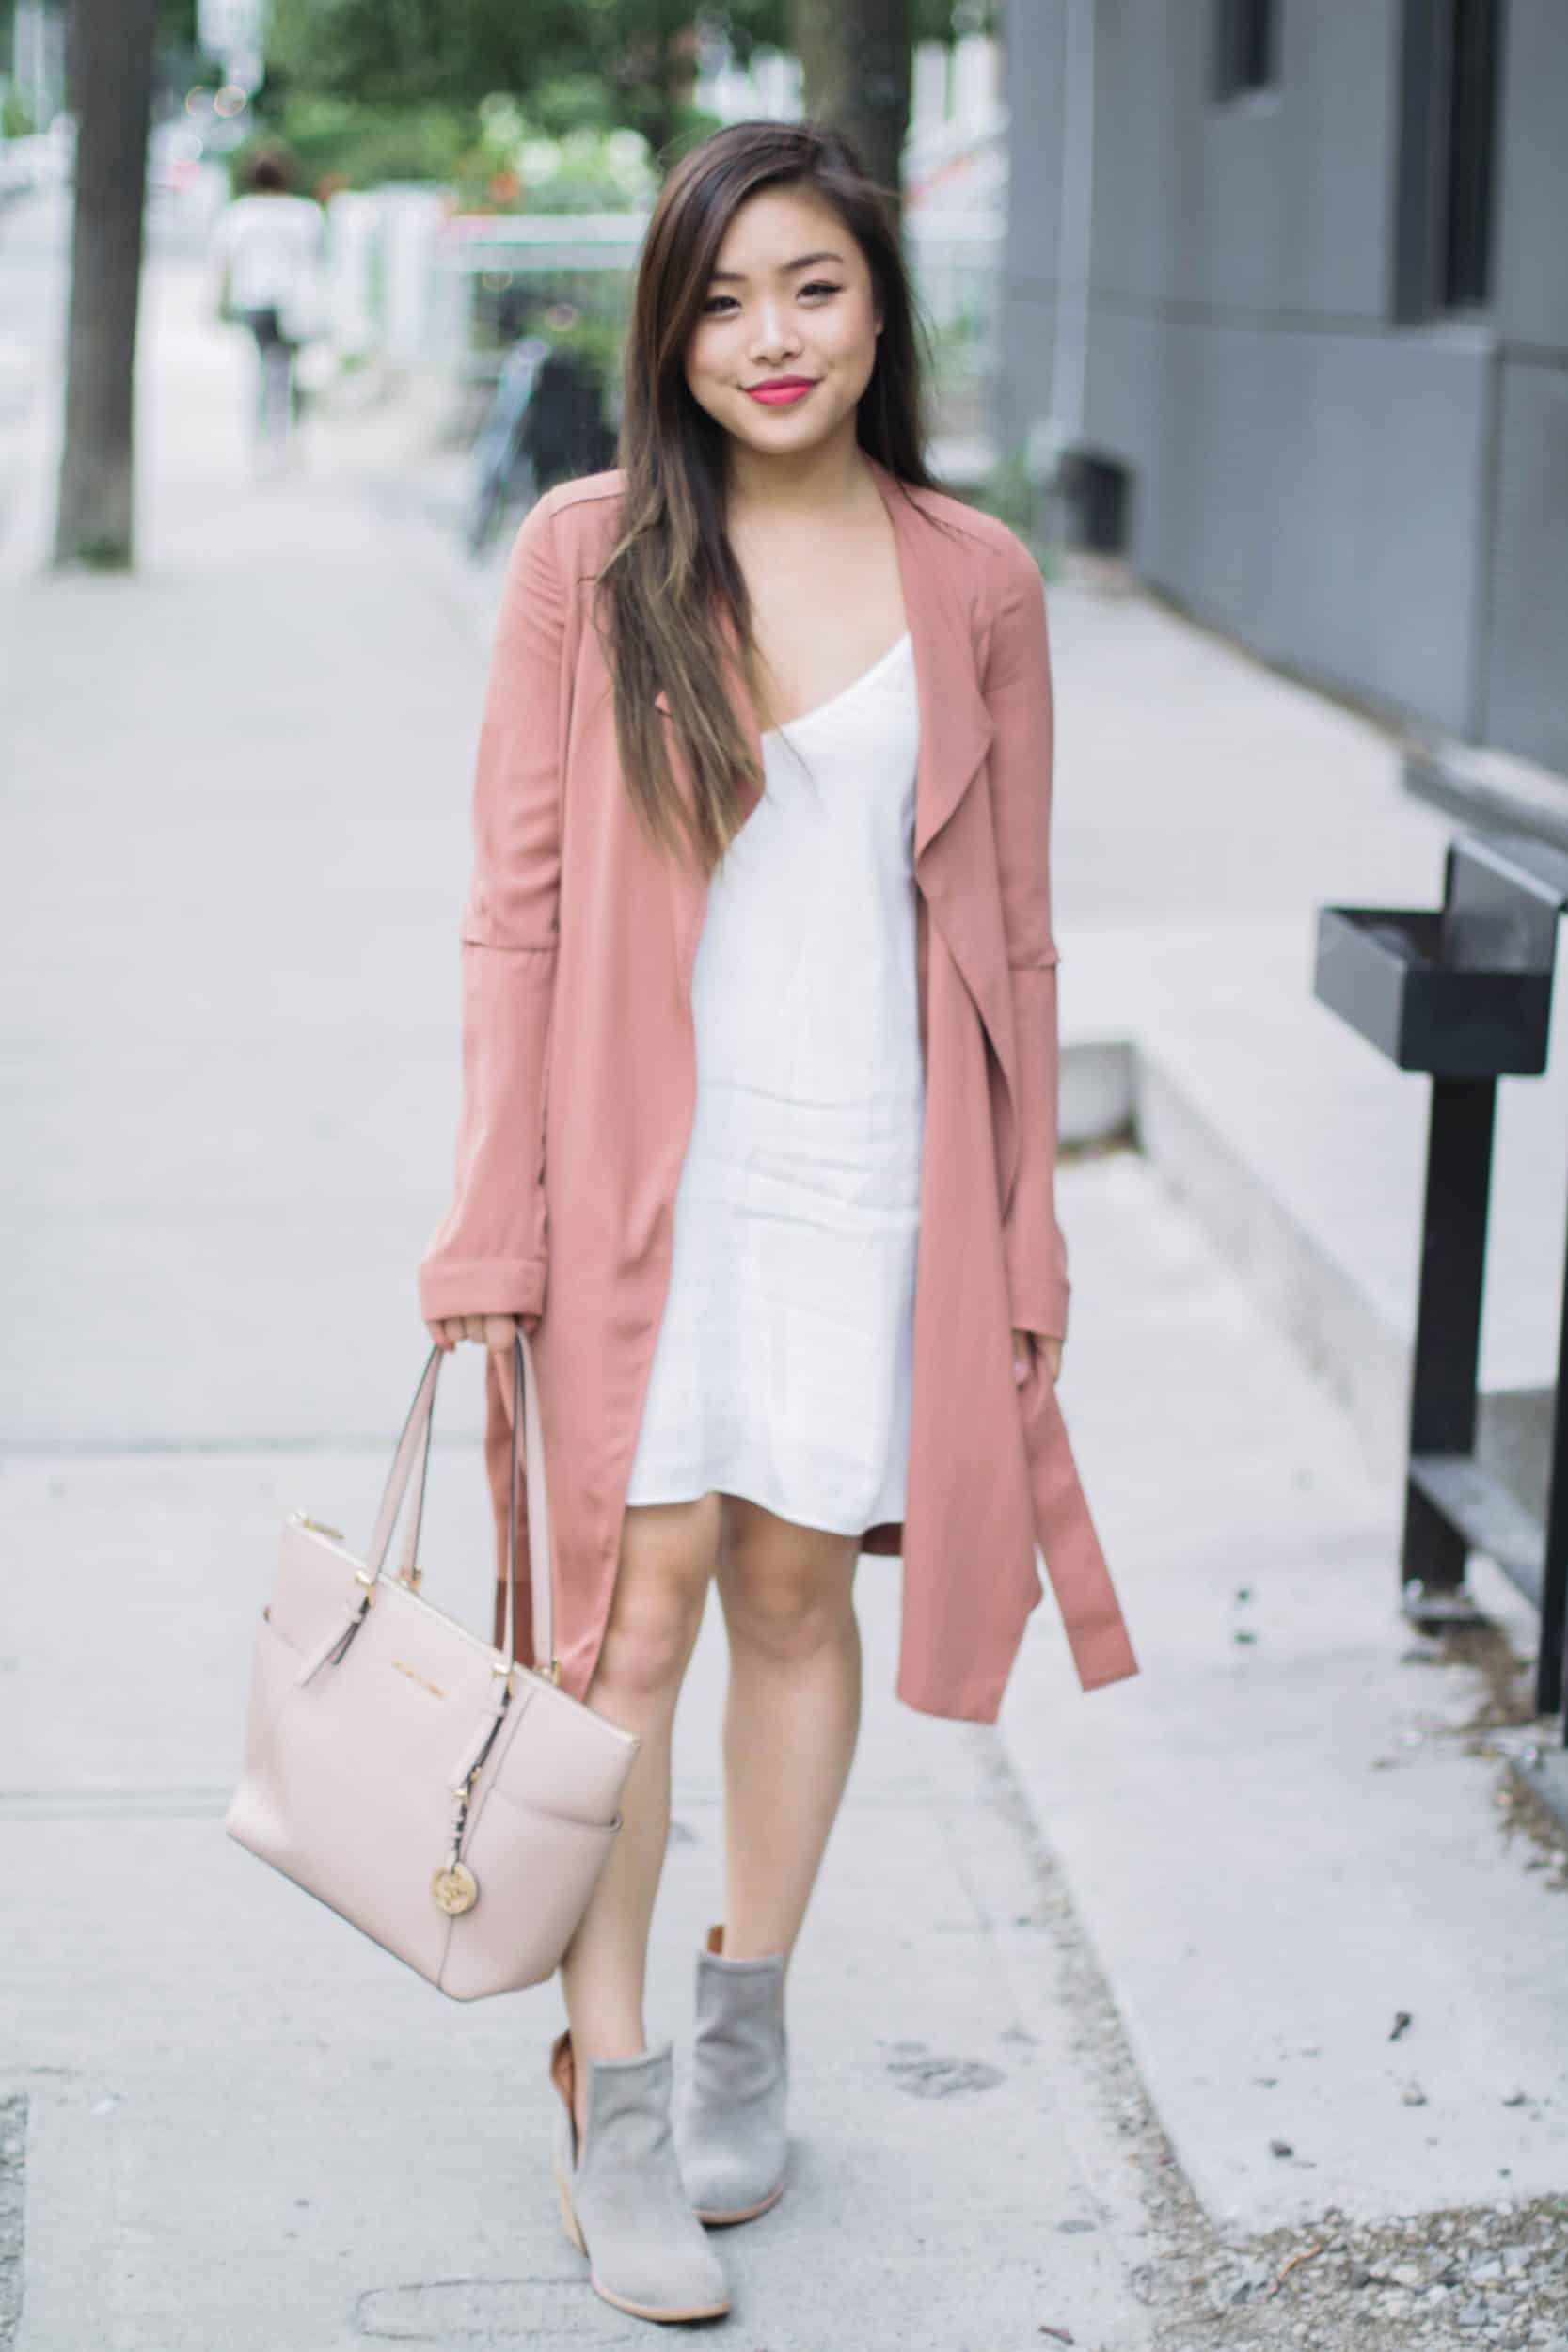 Summer outfit featuring Aritzia white slip dress, pink trench coat, Jeffrey Campbell grey suede booties, and nude Michael Kors bag